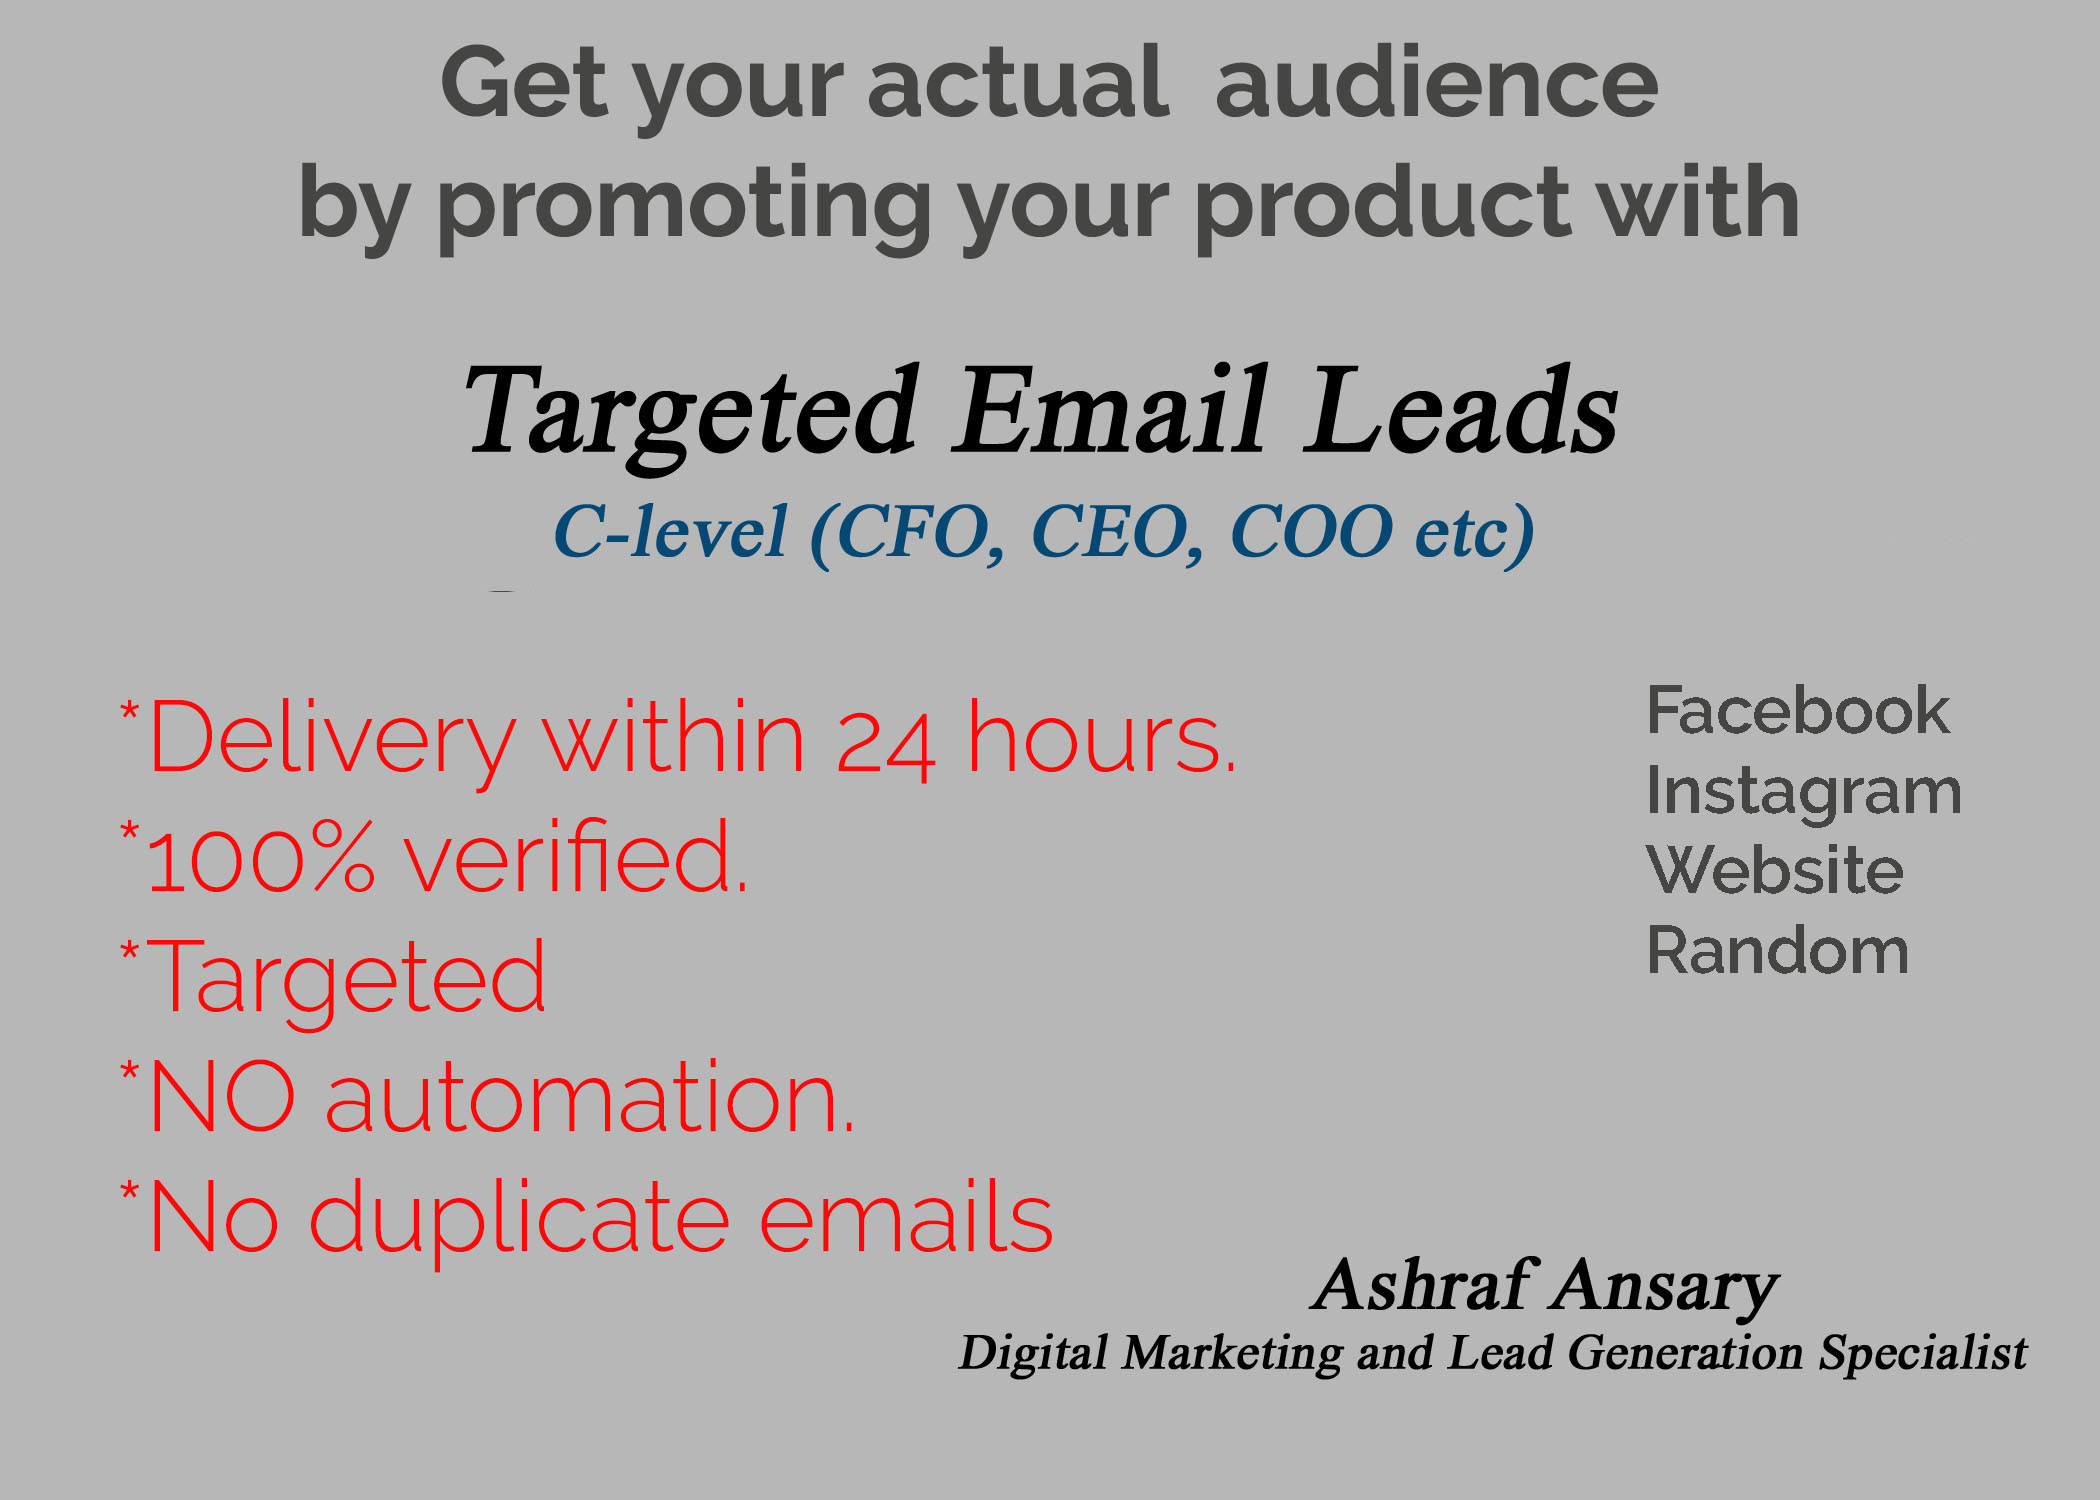 Get your first 100 Targeted CEO,CFO,COO Mail Leads